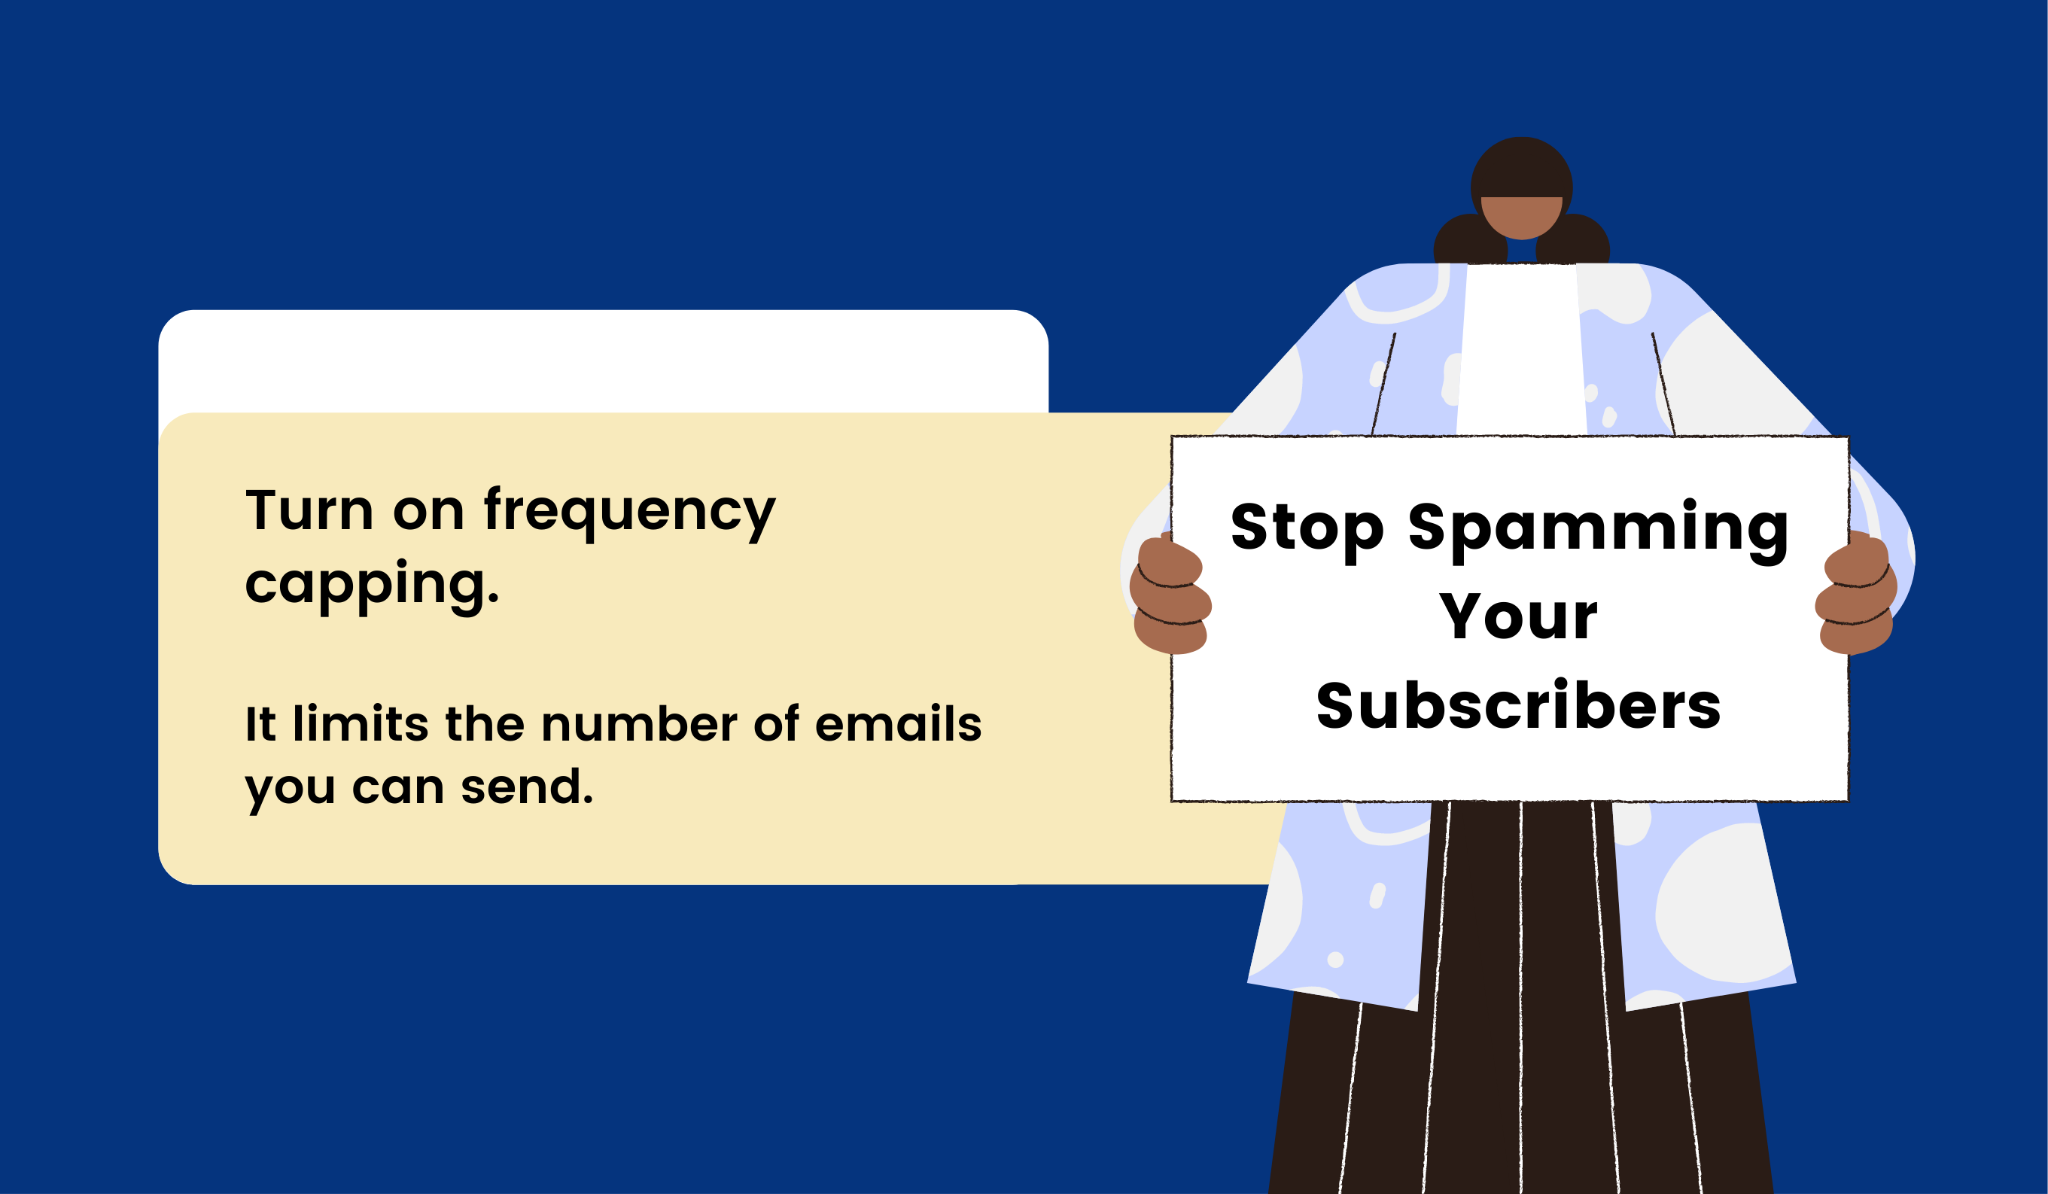 Stop bombarding your subscribers with emails through frequency capping